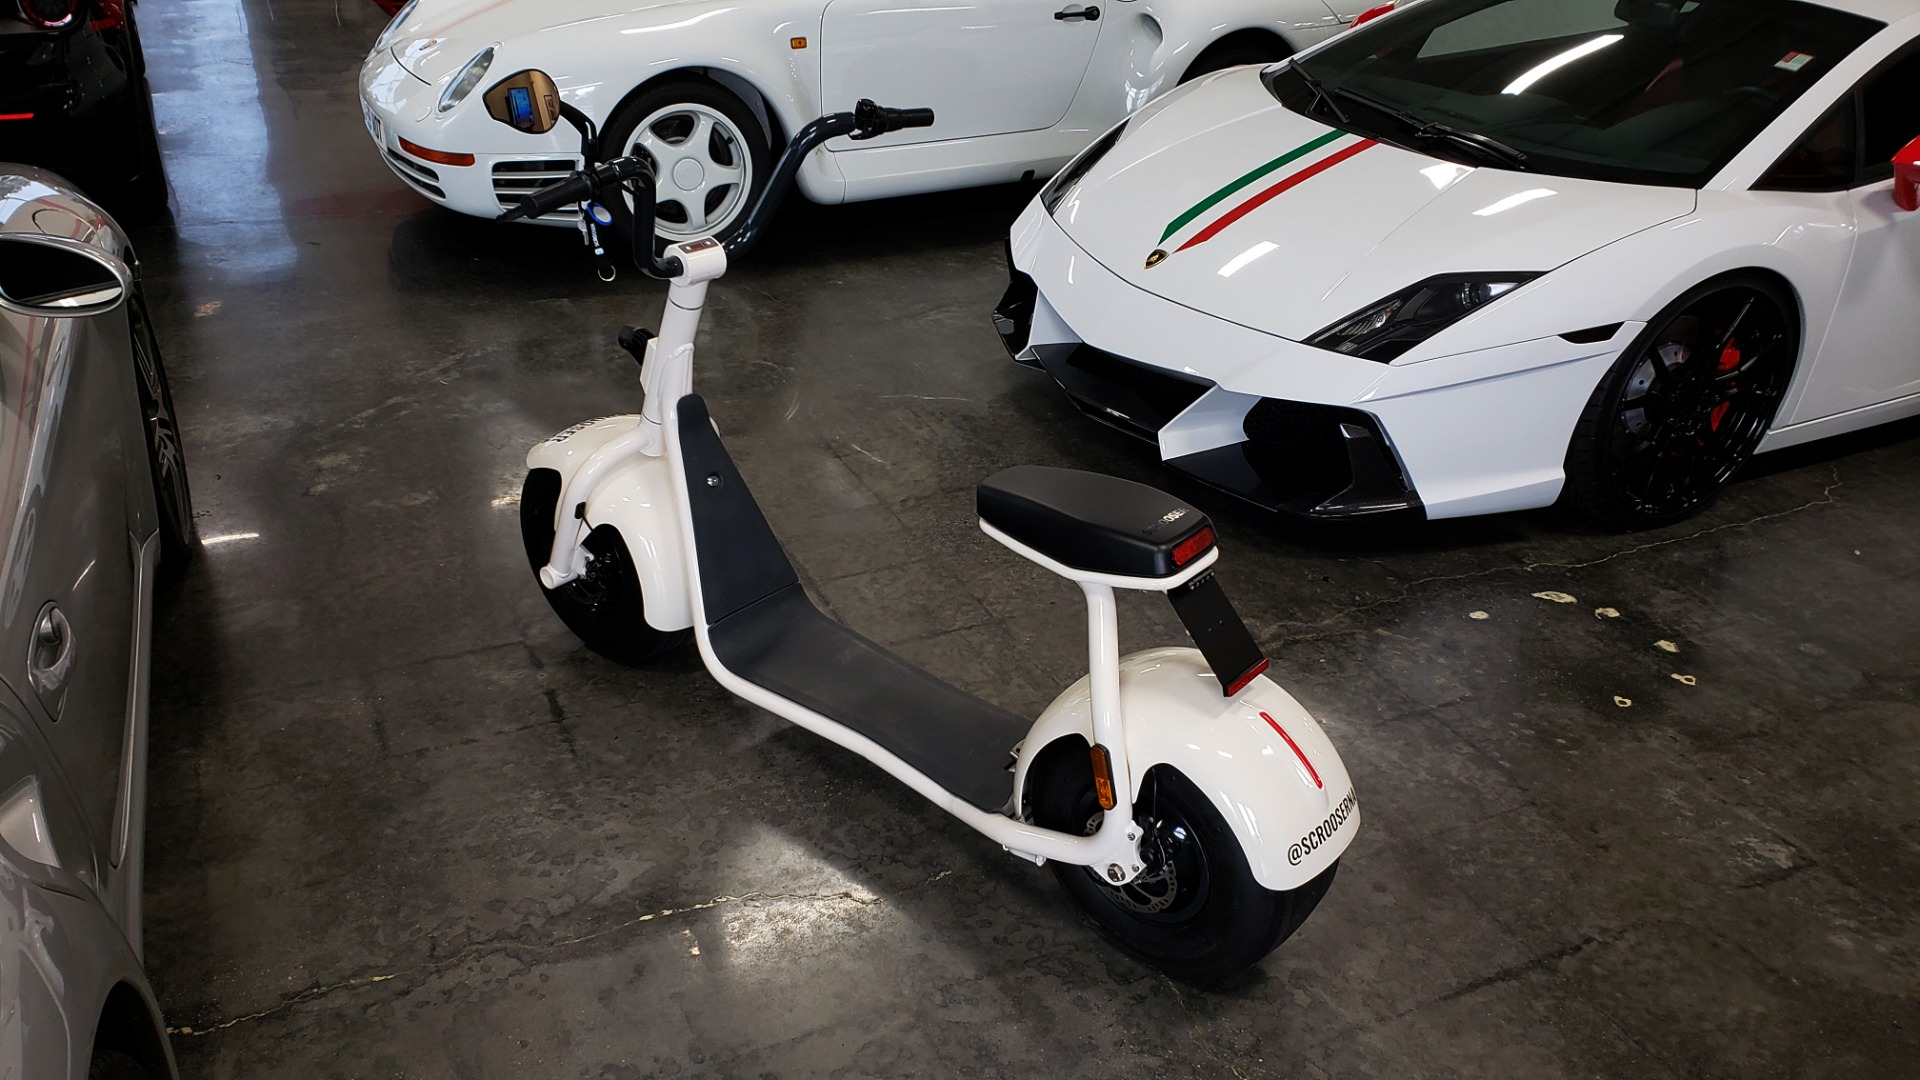 Used 2018 SCROOSER ELECTRIC SCOOTER SELF BALANCED / CUSTOM WHITE / 15.5 MPH / 34 MI RANGE for sale $1,699 at Formula Imports in Charlotte NC 28227 5